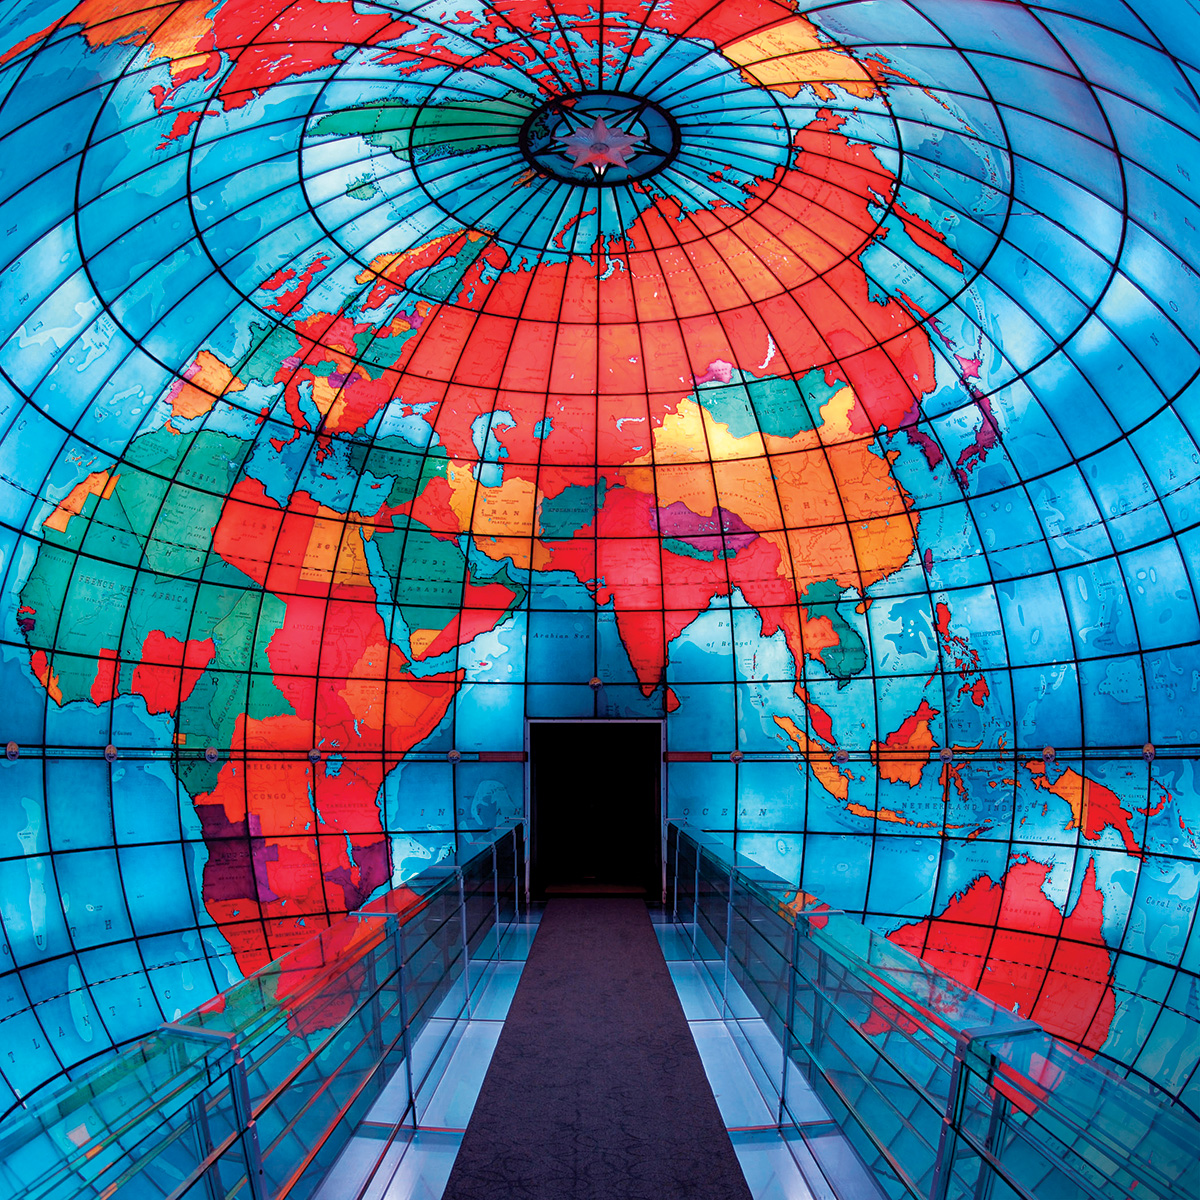 2016 09 01 124 Boston Mapparium.jpg